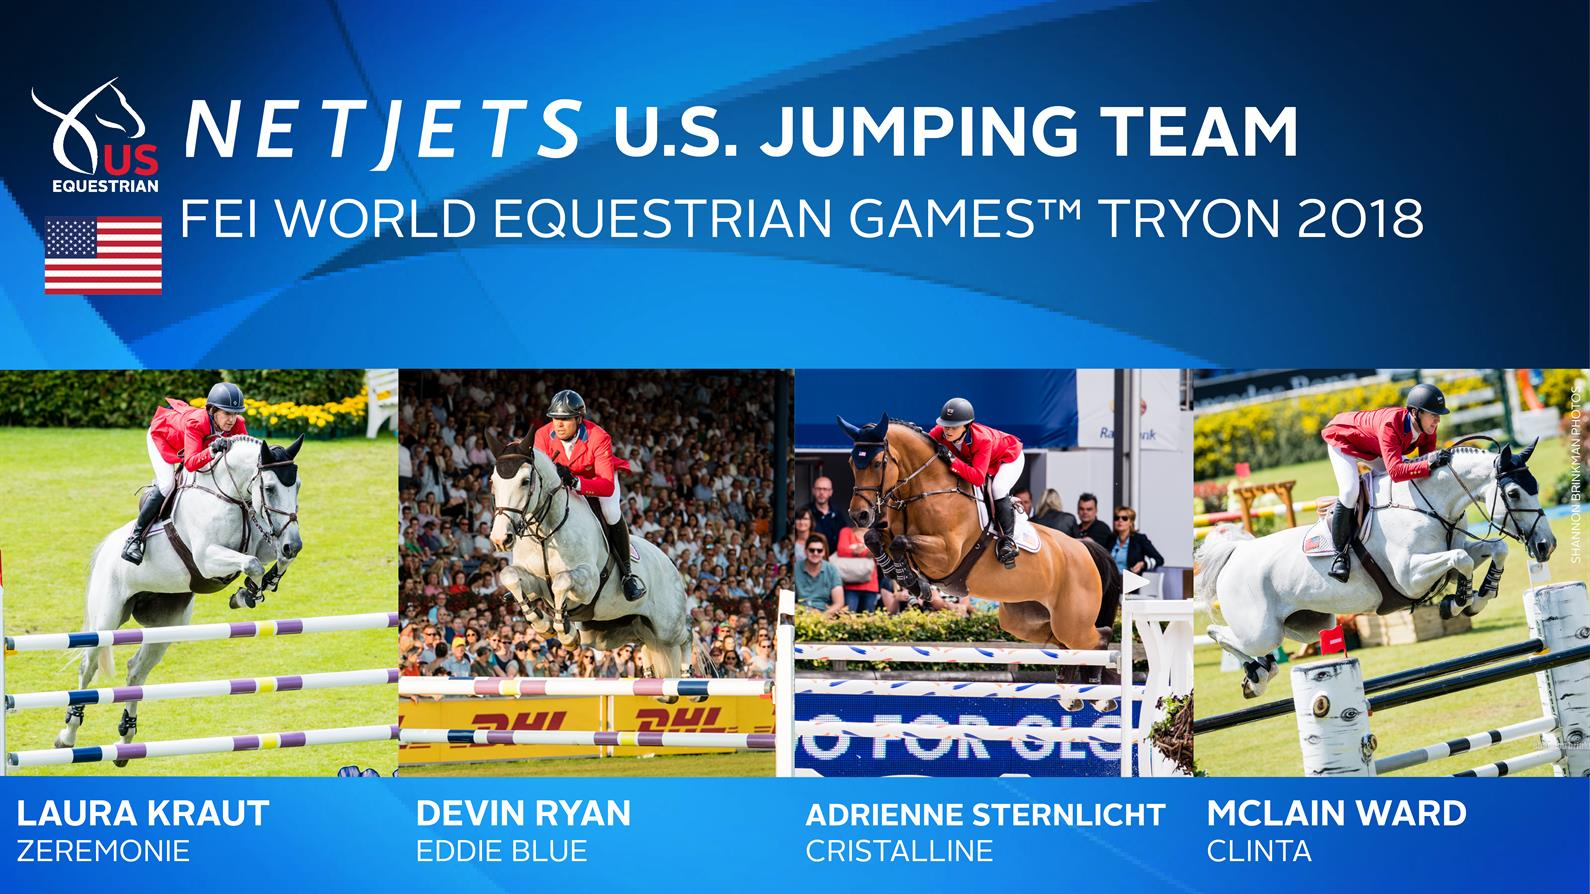 World Equestrian Games 2020.Sights Set On Olympic Qualification For Netjets U S